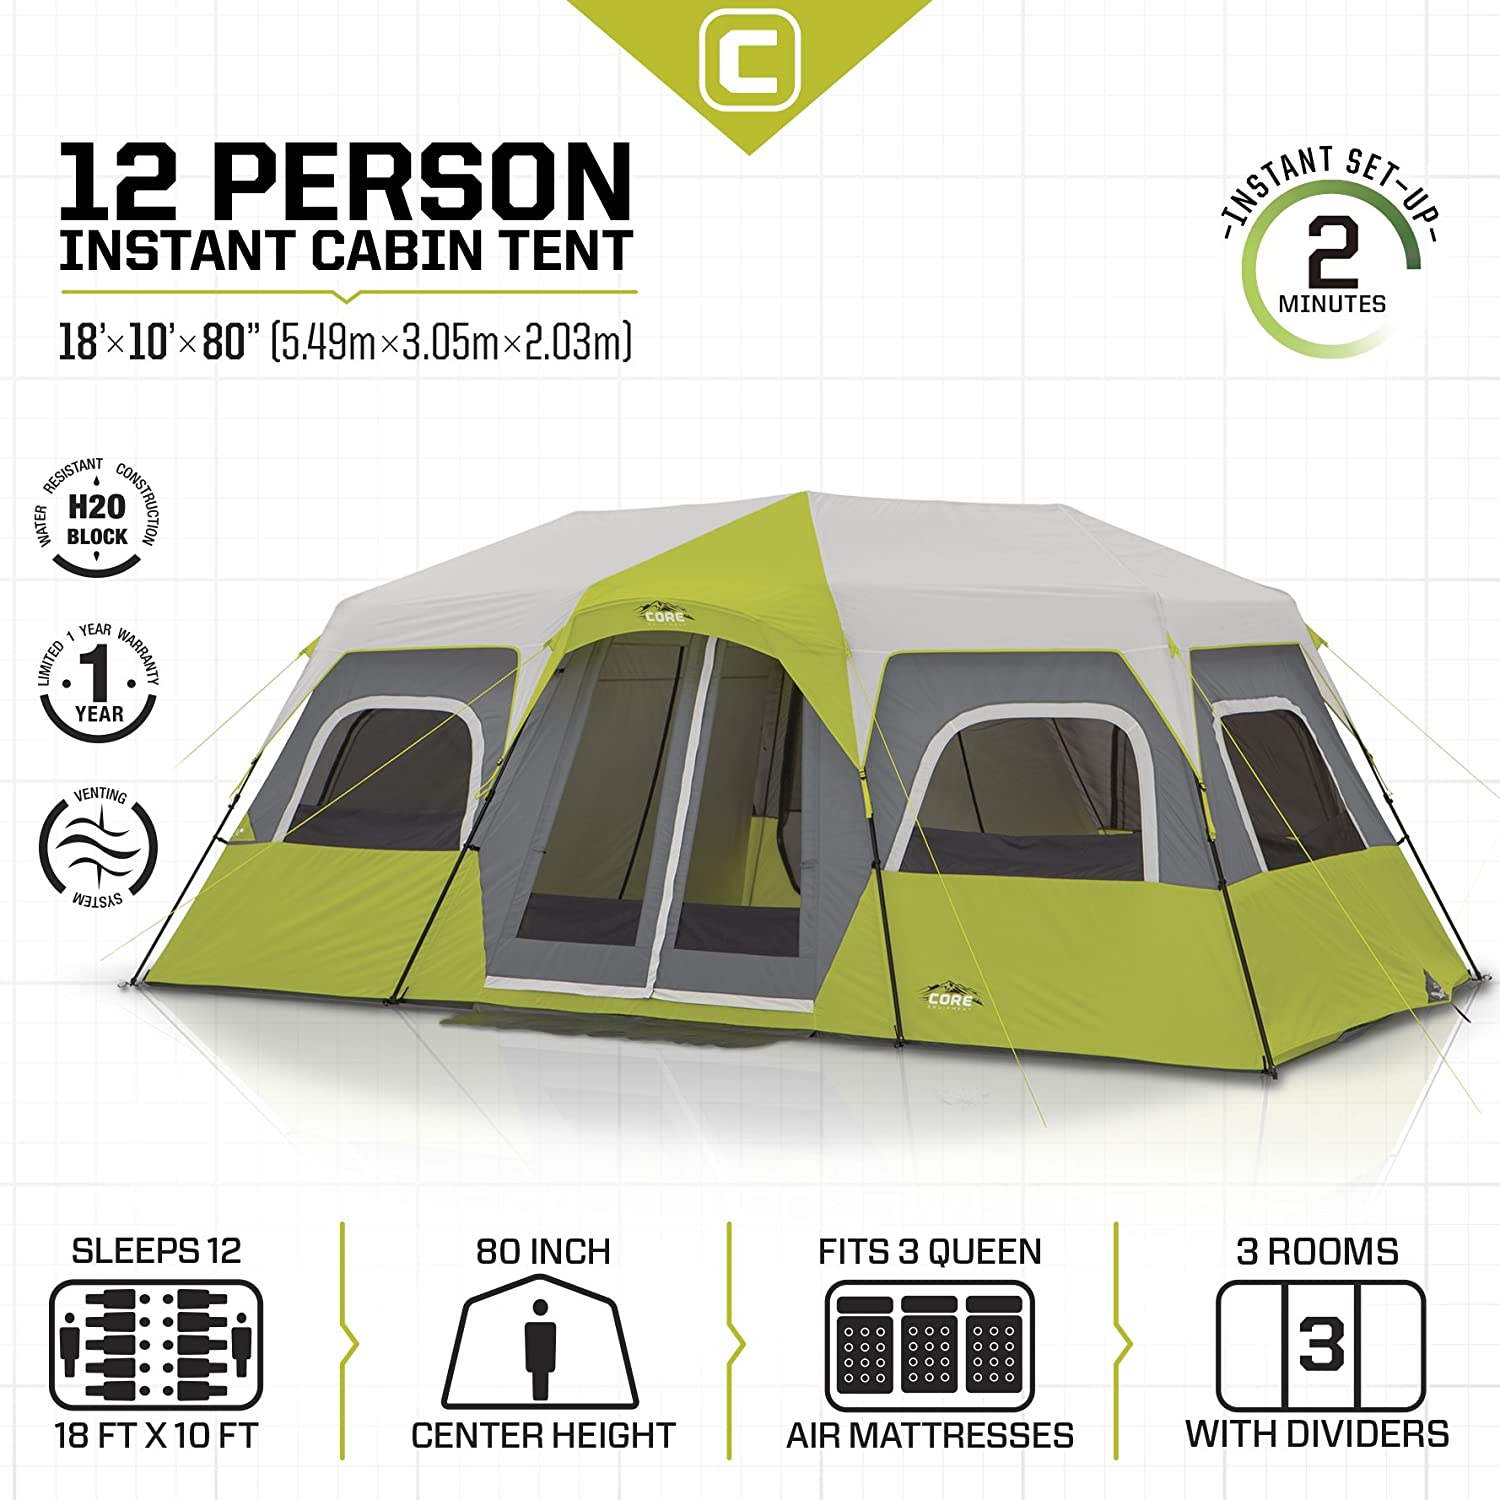 Best 3 Room Tents For Camping With Family | Sleeping With Air